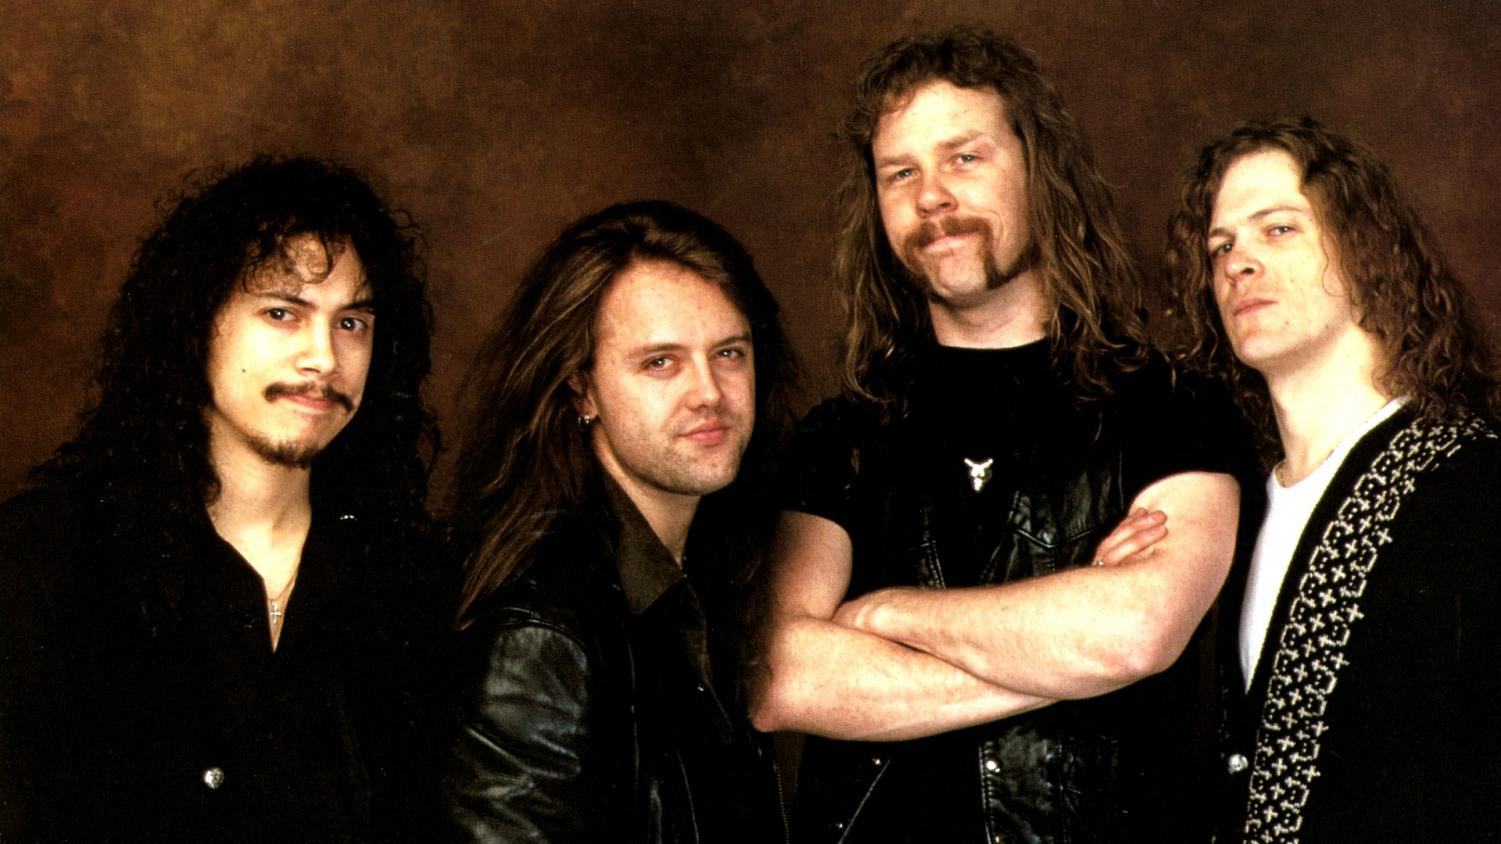 Metallica in the early 1990s